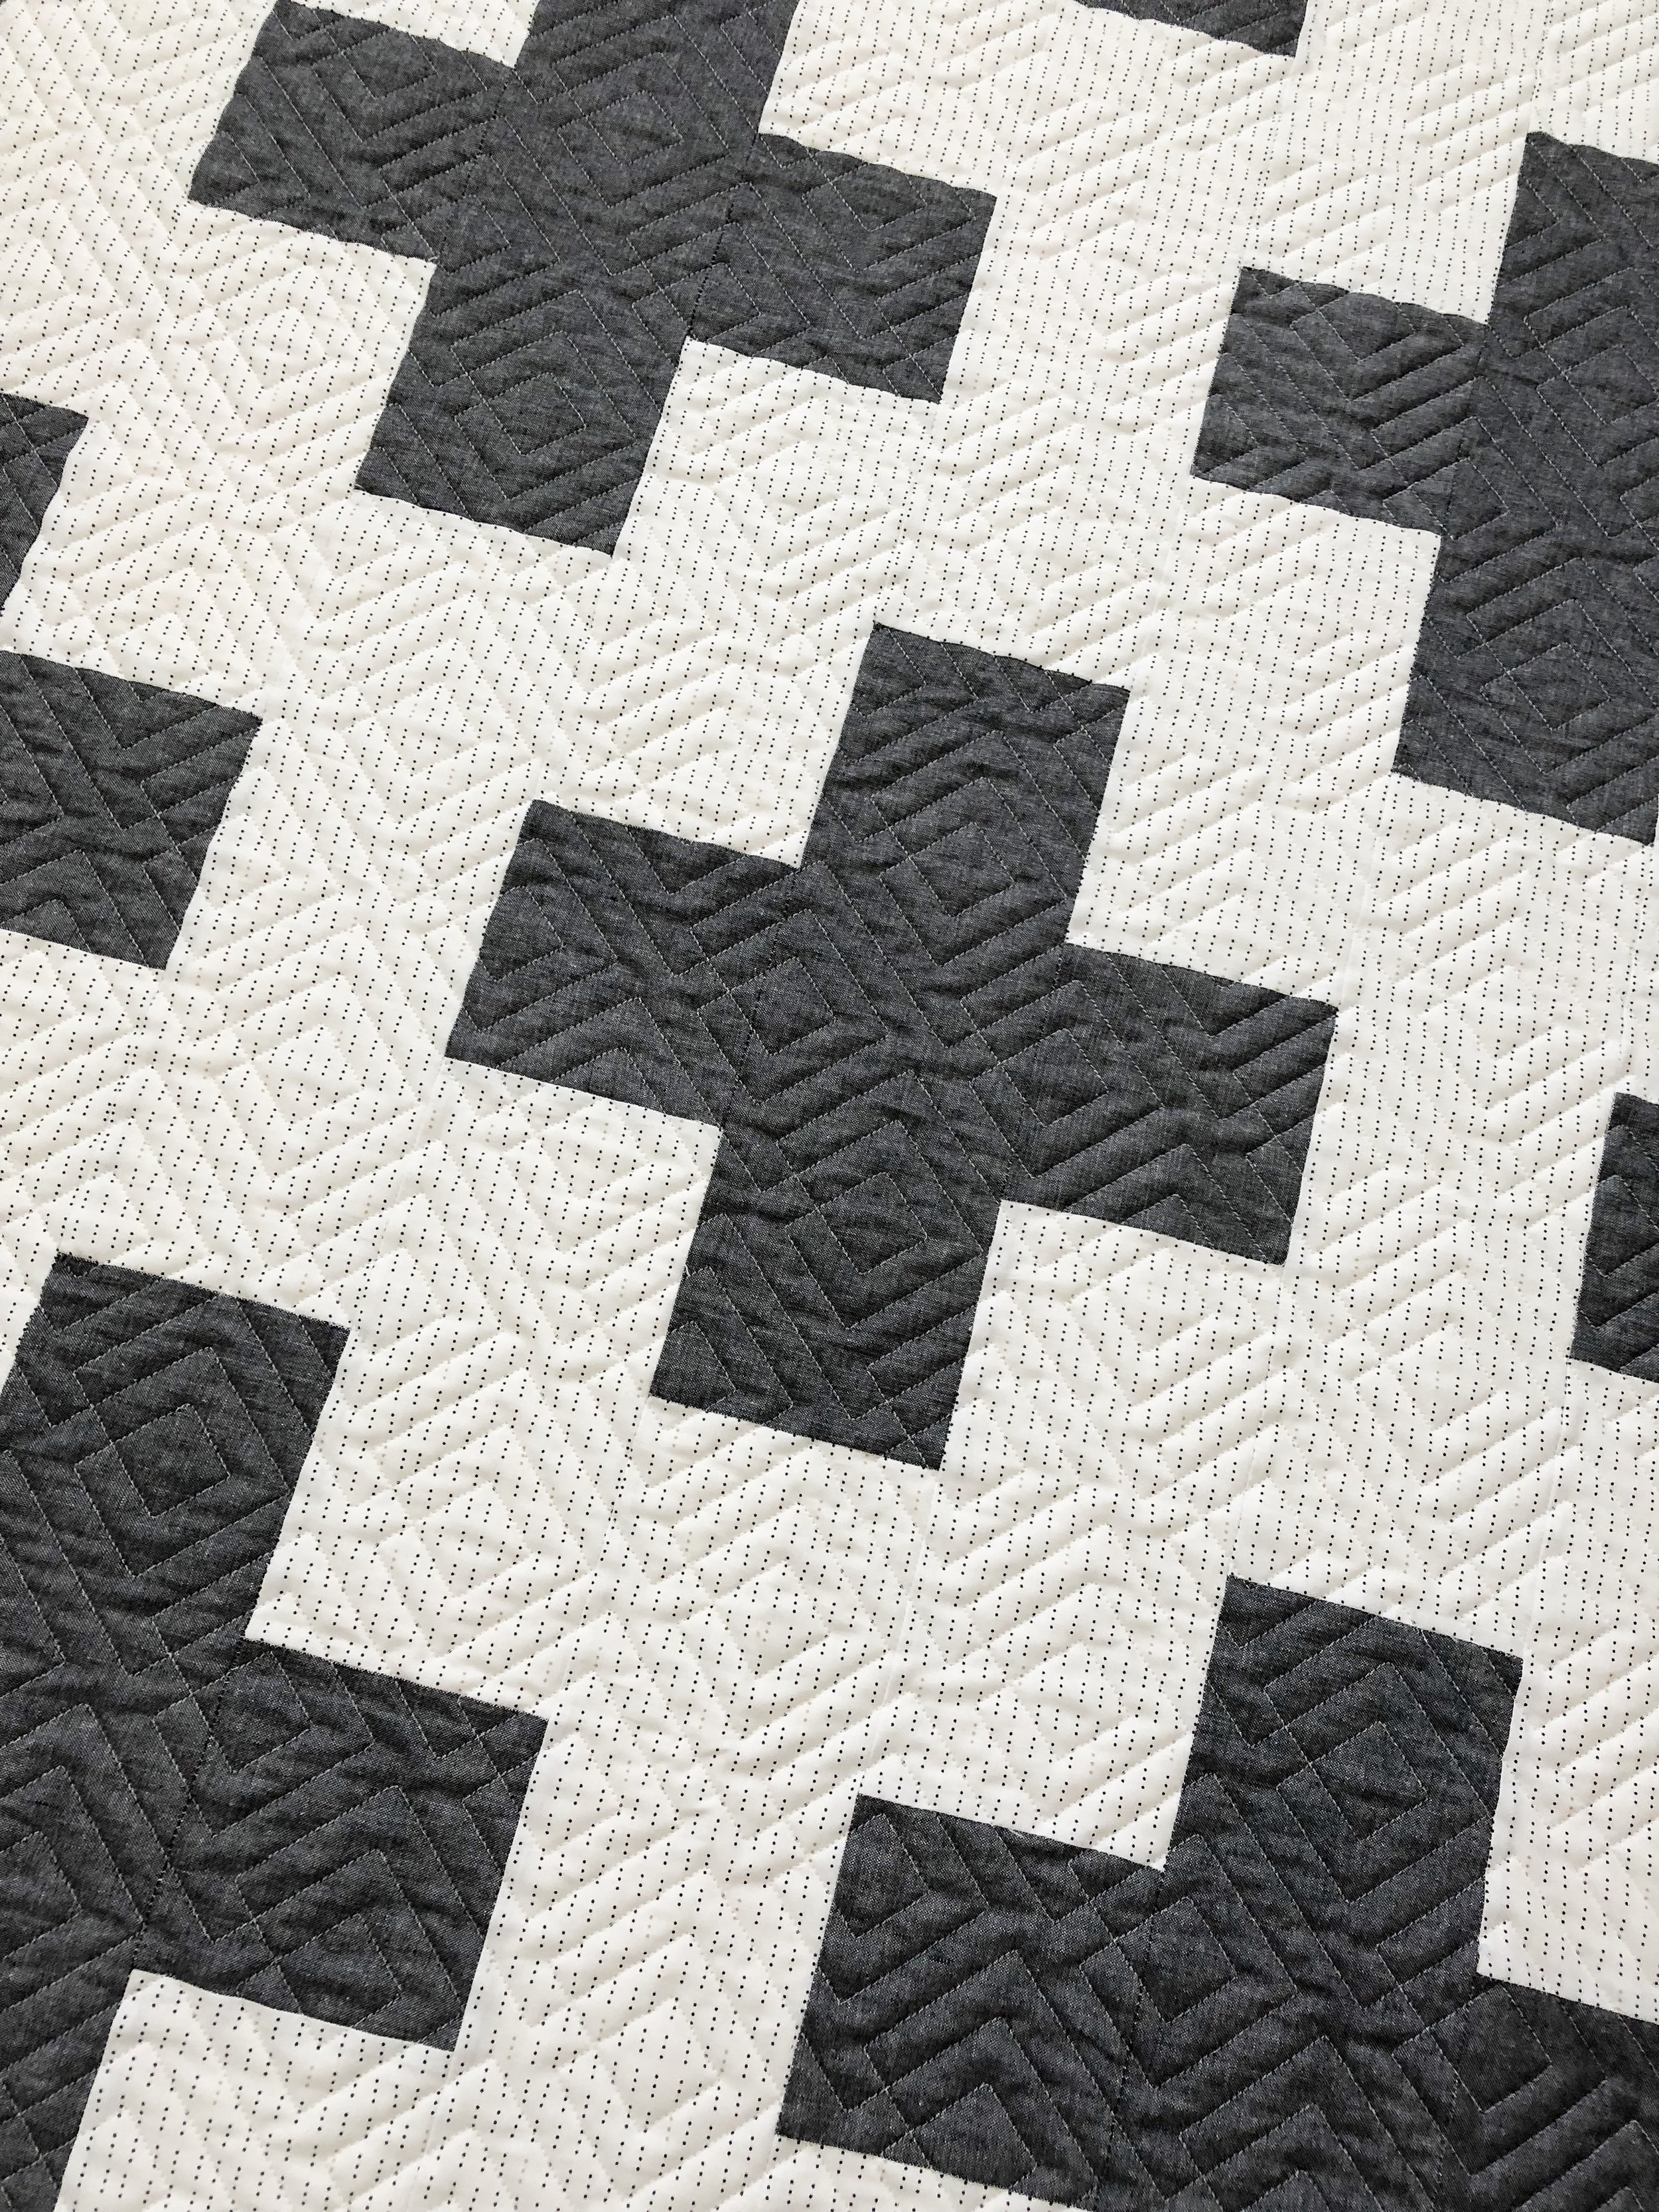 Amanda also picked Shannon Fabrics super soft embossed Cuddle (minky) dot for the backing.